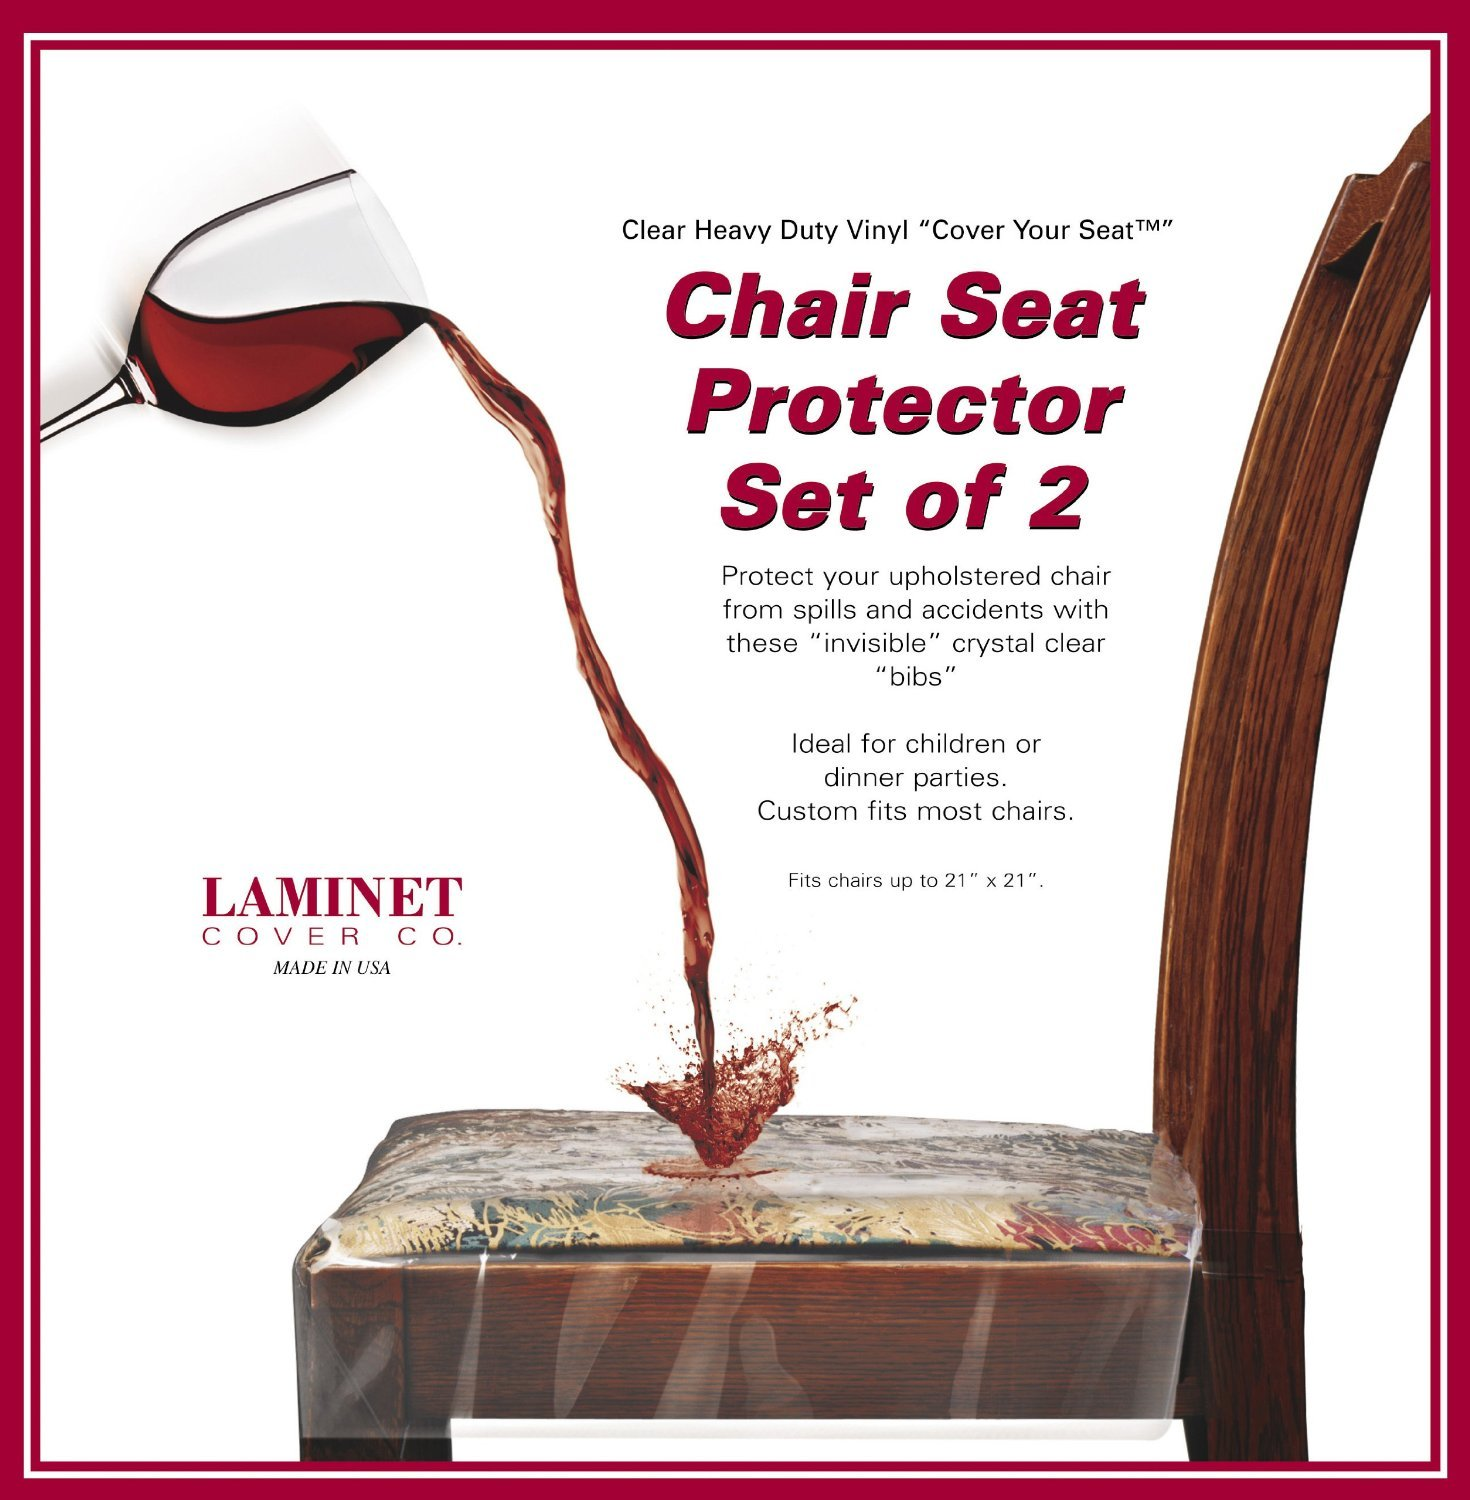 Amazon LAMINET Vinyl Chair Protectors Clear 26X253 4 Inch Fits Chairs Up To 21x21 Set Of 2 Kitchen Dining